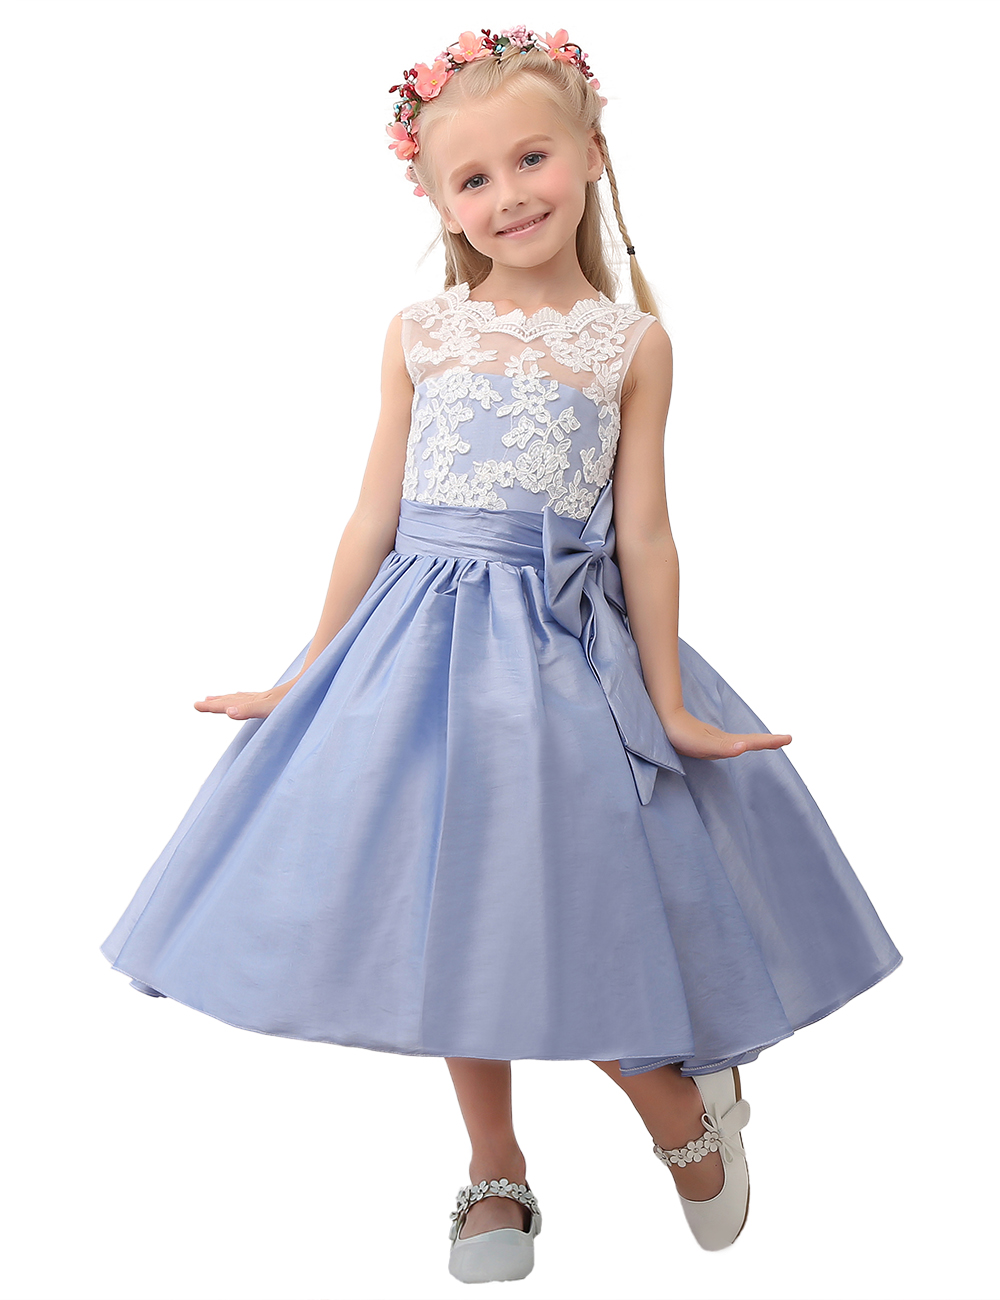 Lace taffeta flower girl dress blue taffeta princess dress cutie lace taffeta flower girl dress blue taffeta princess dress cutie girl party dress with sash and izmirmasajfo